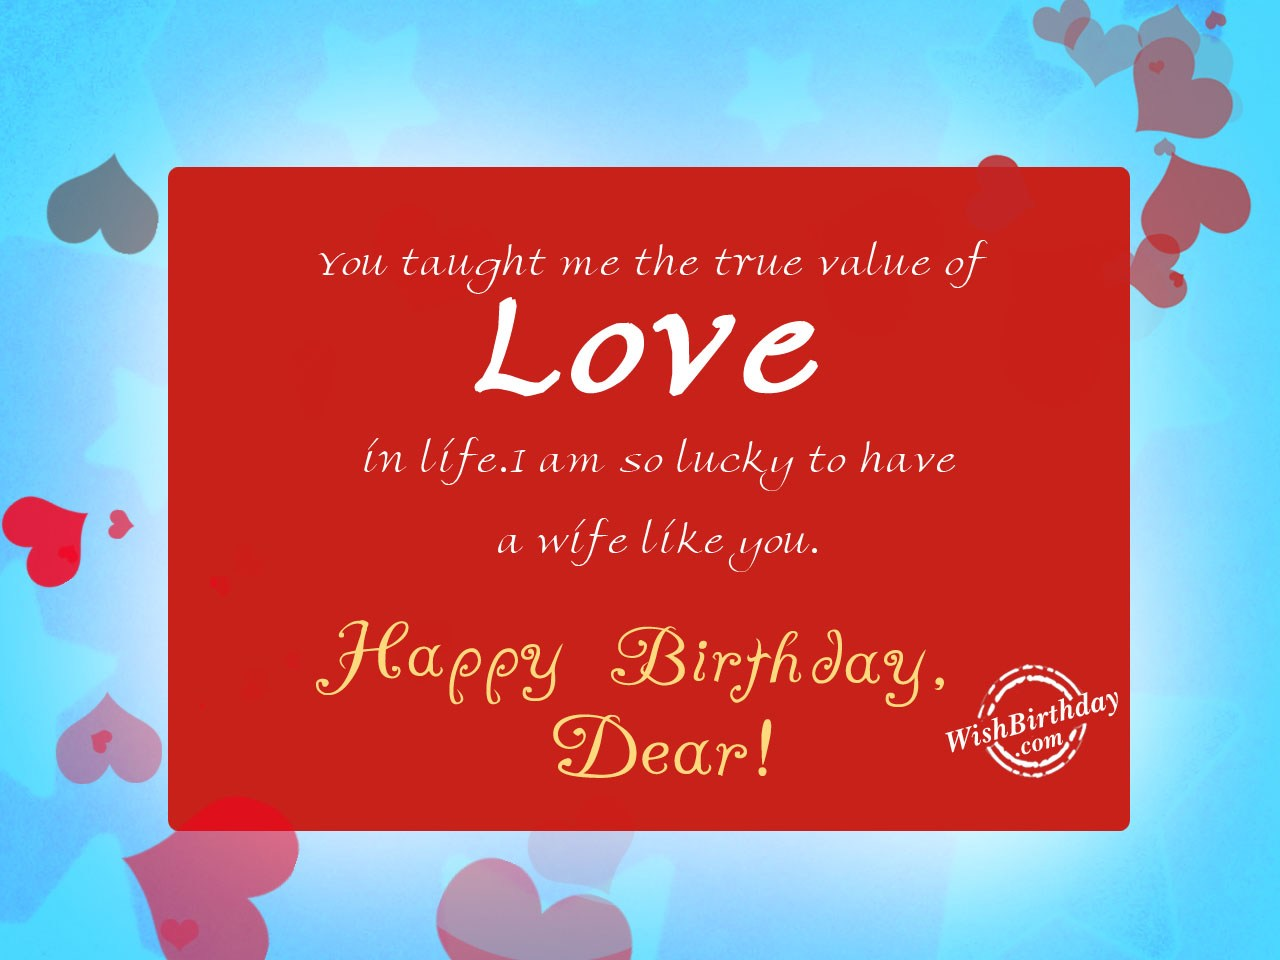 birthday wishes to wife greeting cards ; You-taught-me-the-true-value-of-love-copy